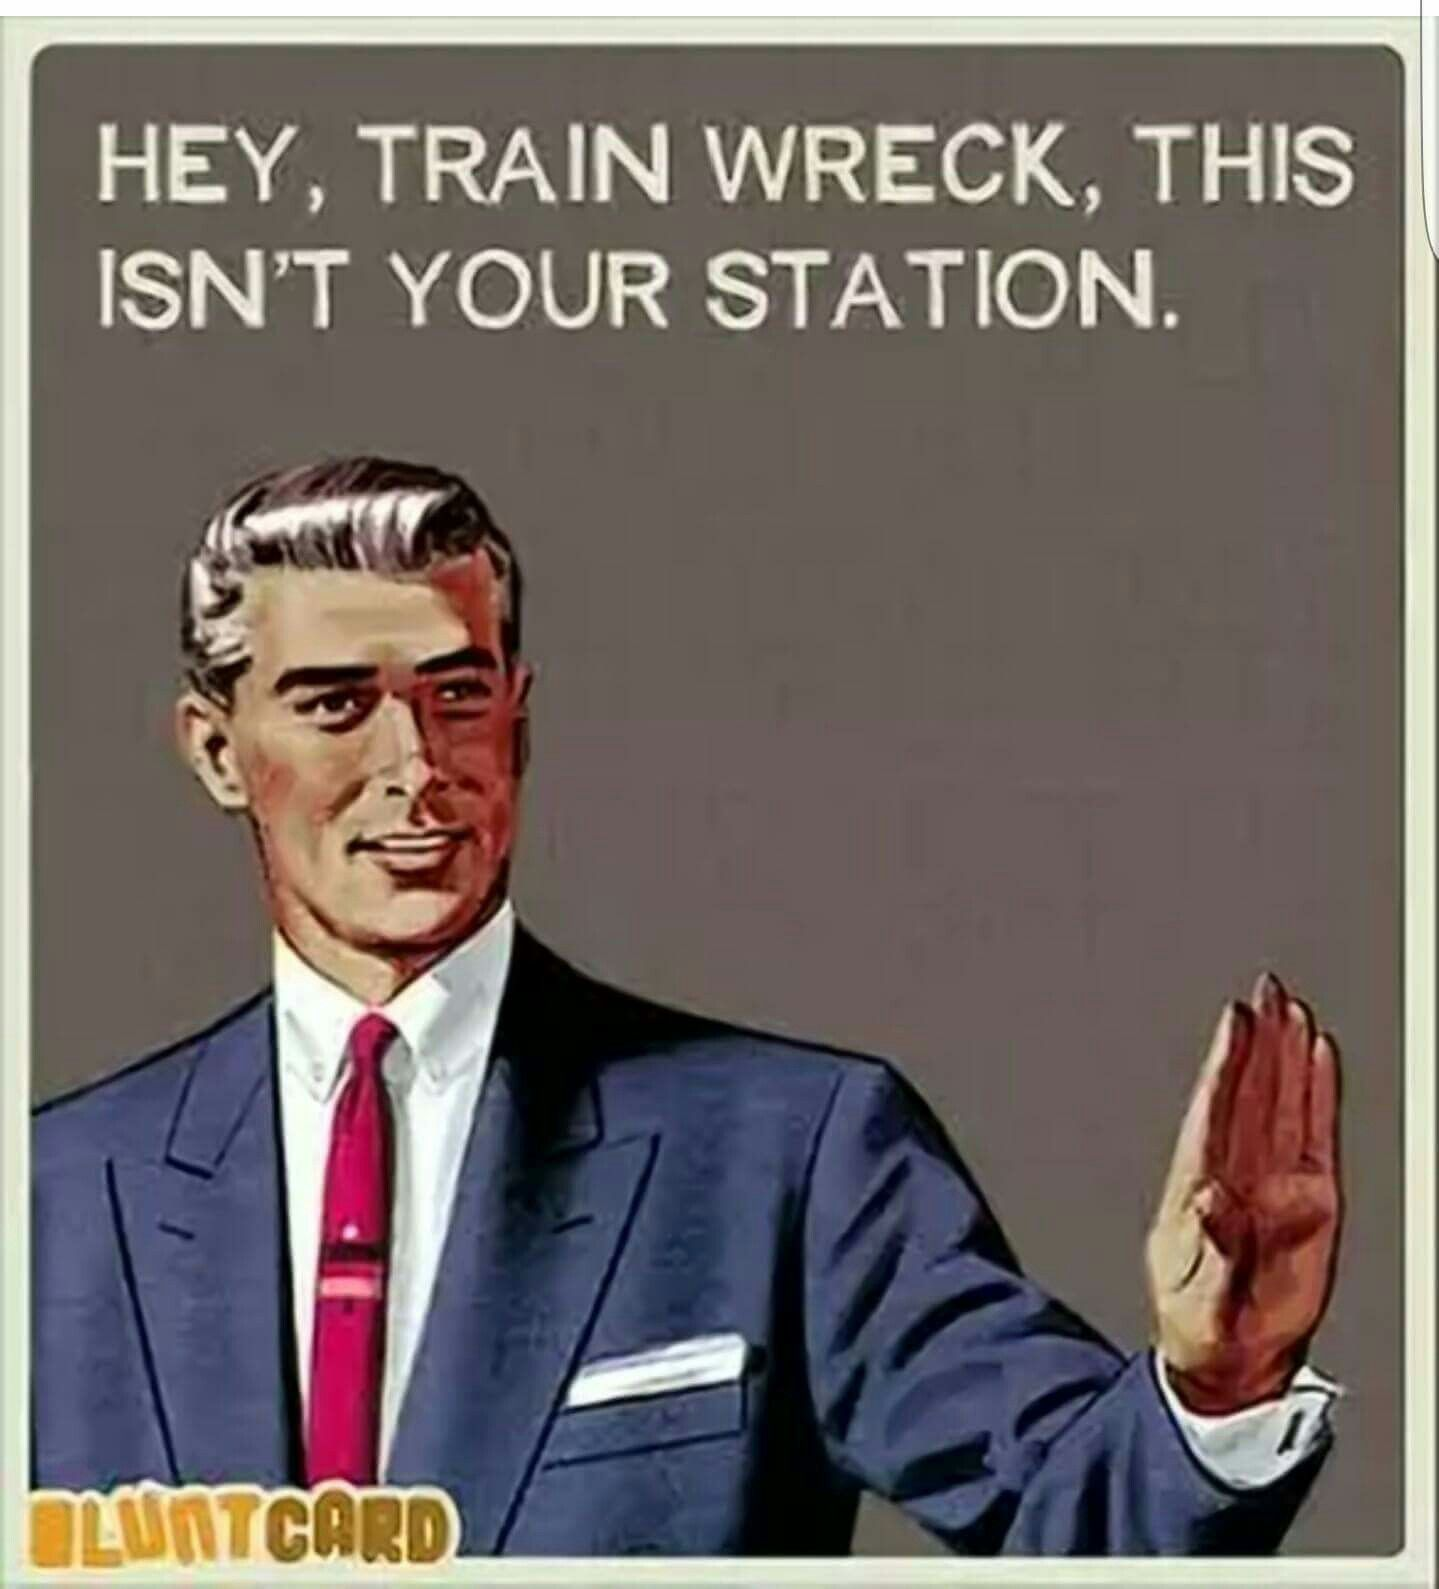 Trainwreck Quotes Funny Pictures Of The Day  37 Pics  Pinterest  Retro Funny Funny .